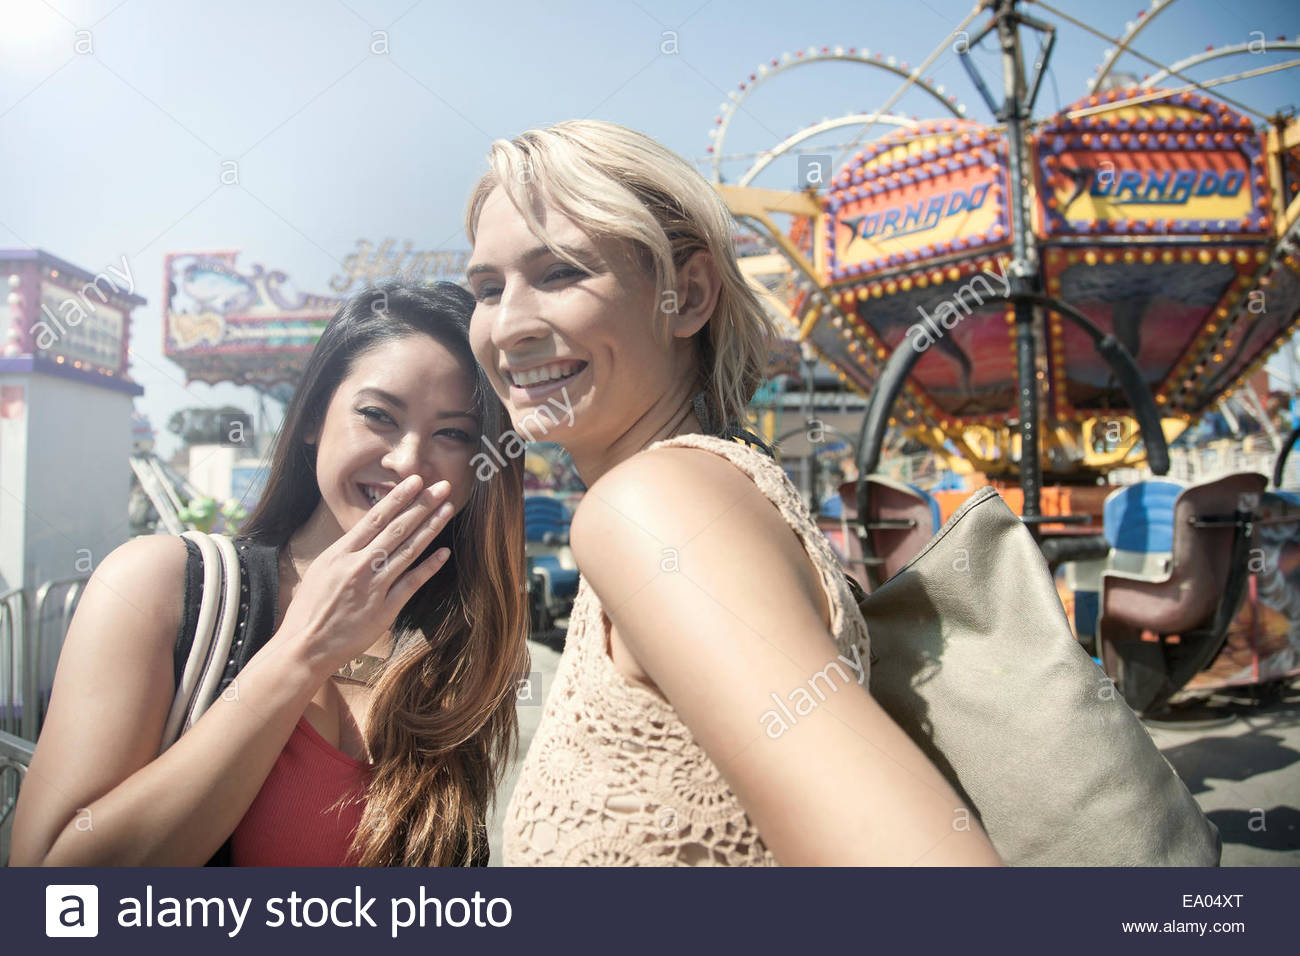 Two women at fairground, laughing and watching surroundings - Stock Image